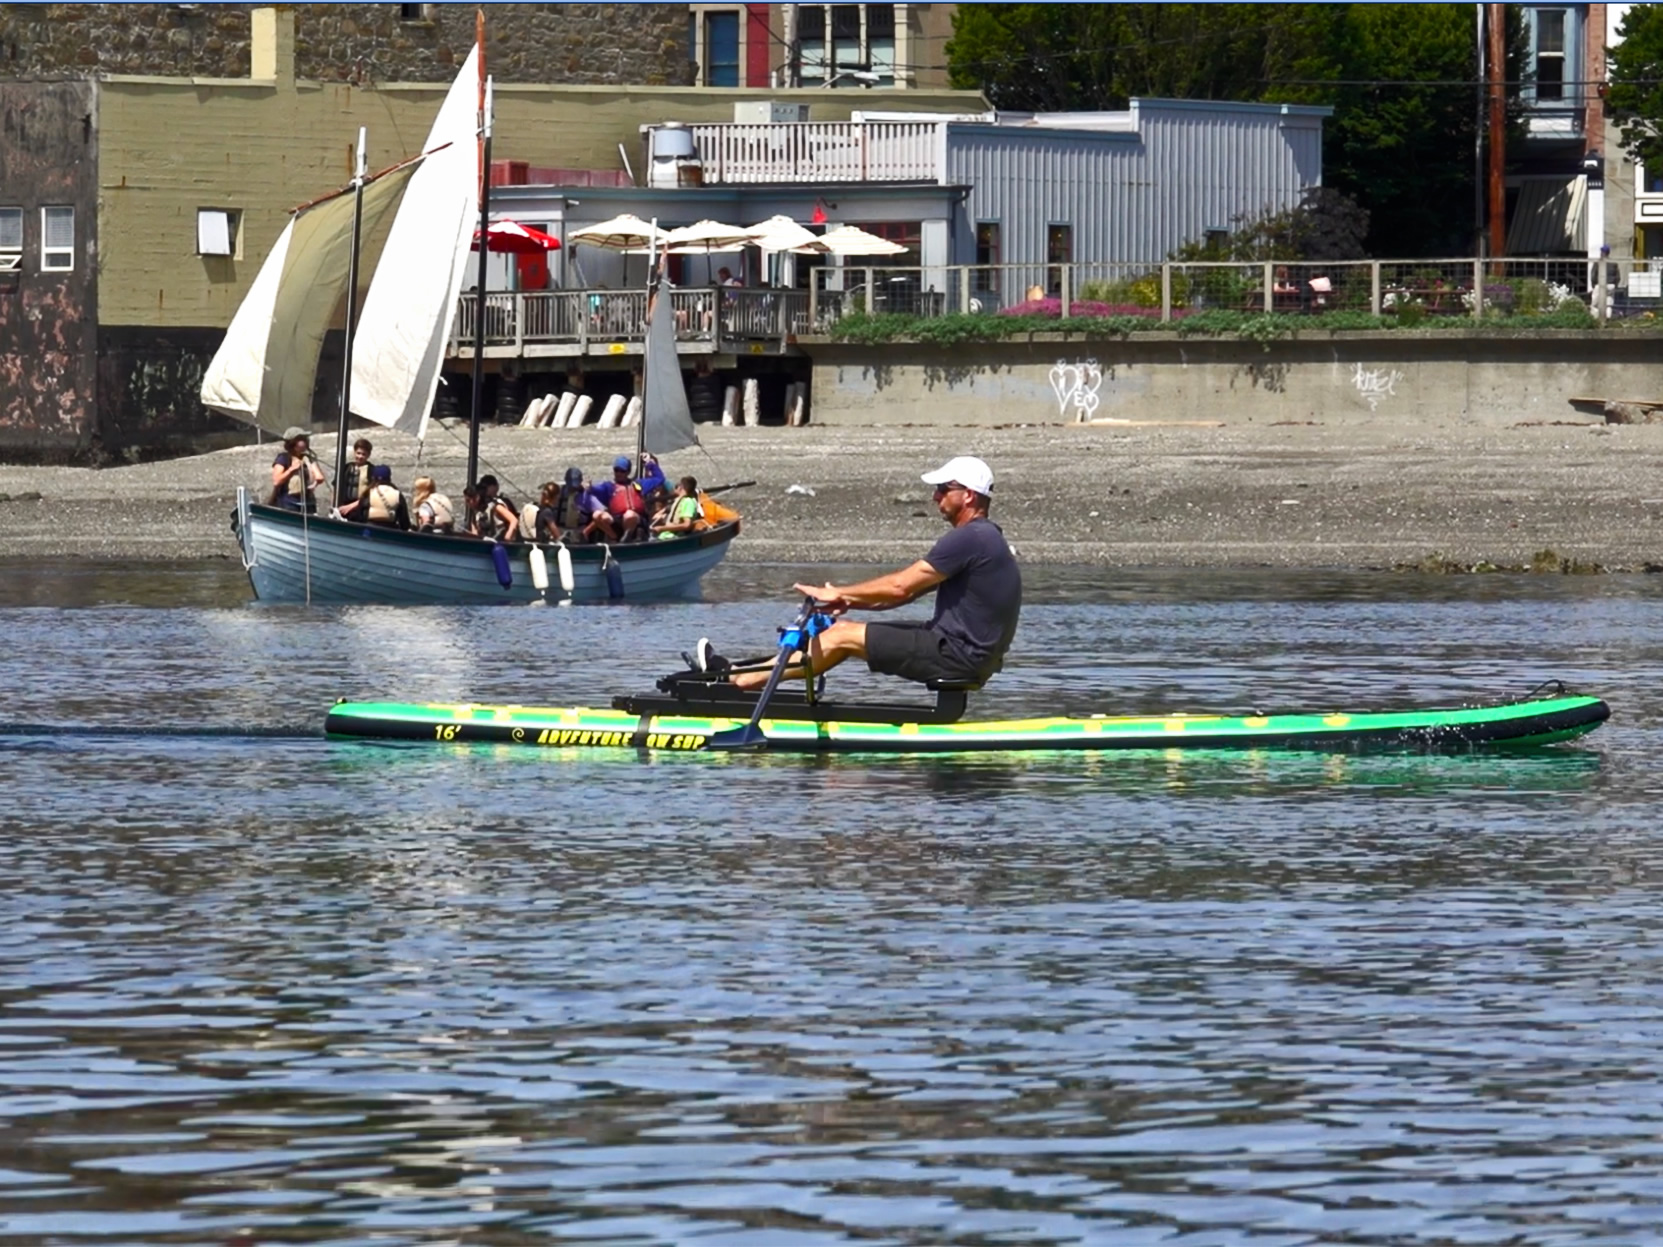 Whitehall-Rowing-and-Sail-Tango-17-Rowboat-Peter